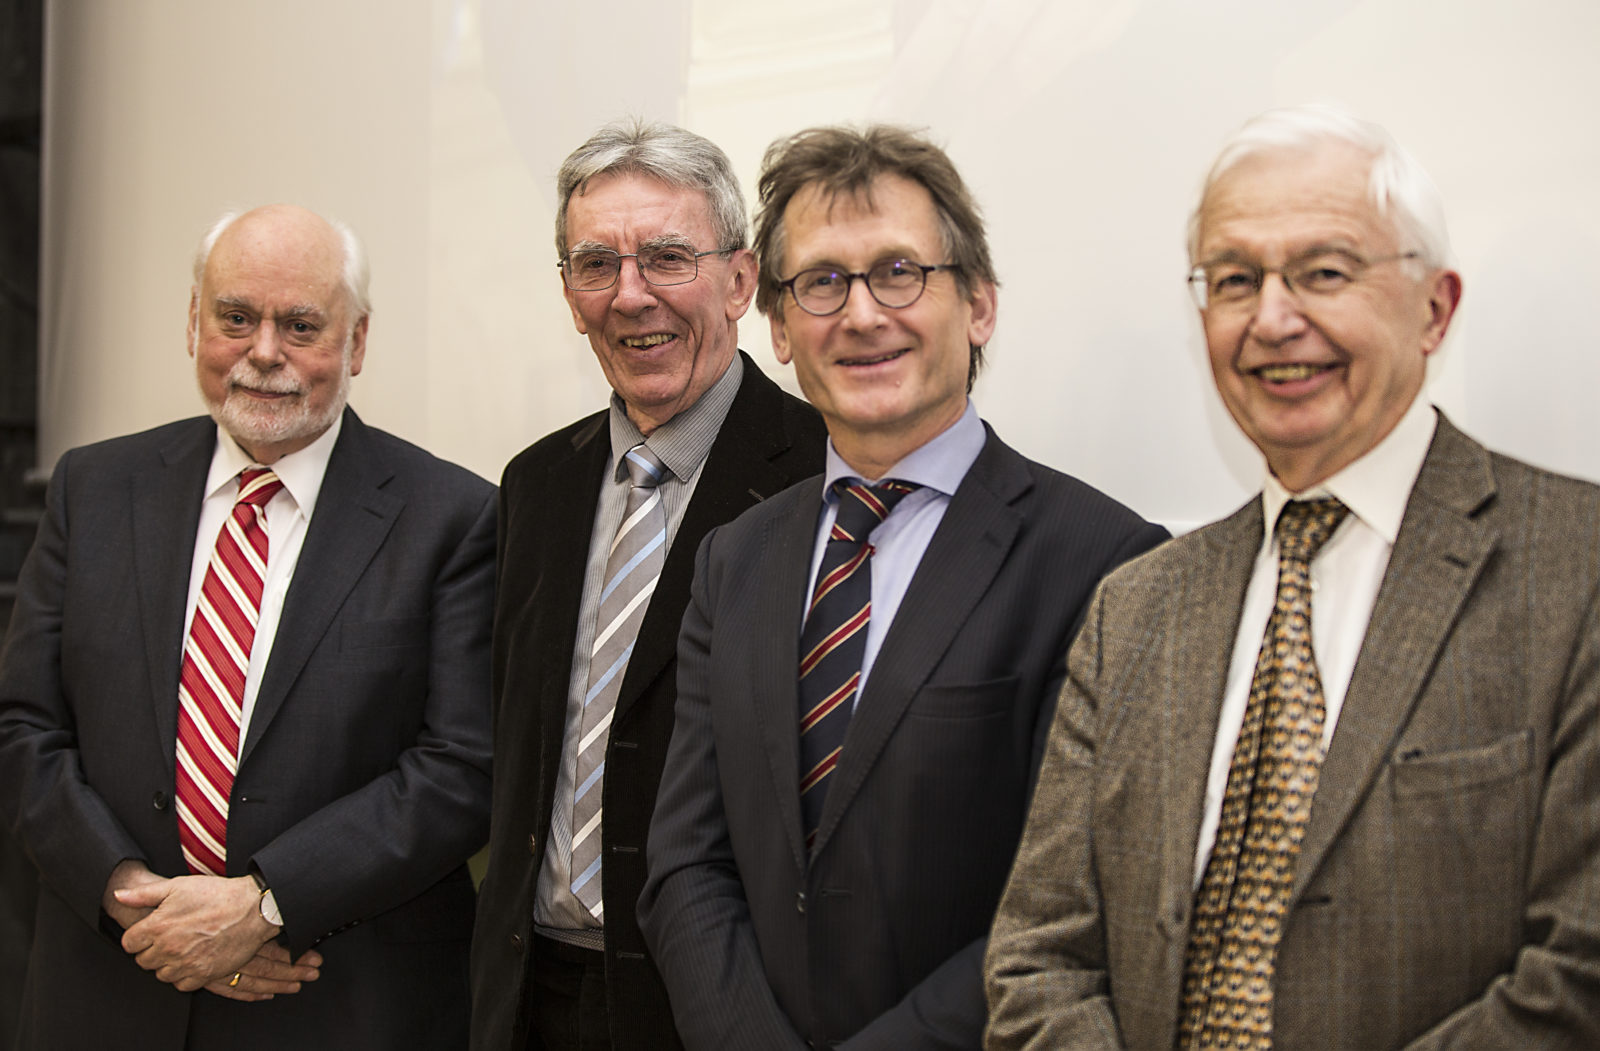 2016 Nobel Prize in Chemistry winners Fraser Stoddart, Jean-Pierre Sauvage and Ben Feringa with Jean-Marie Lehn